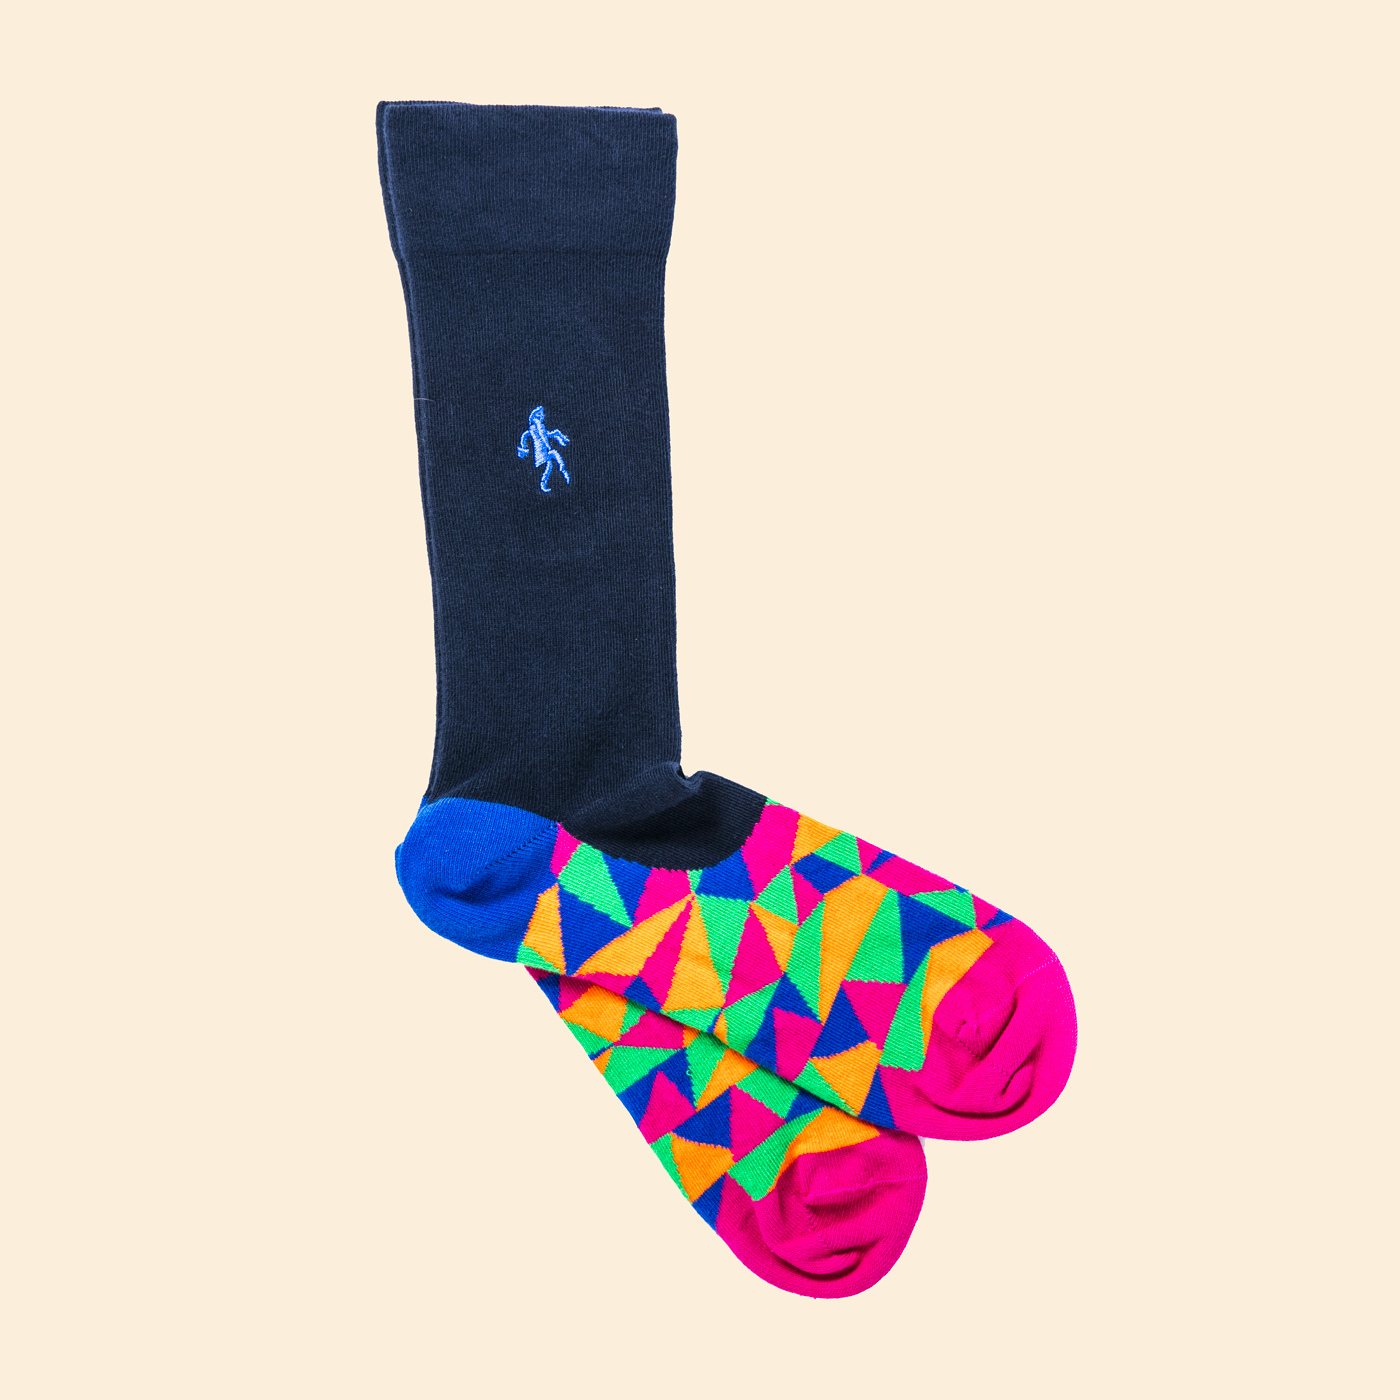 Heron of Alexandria Socks